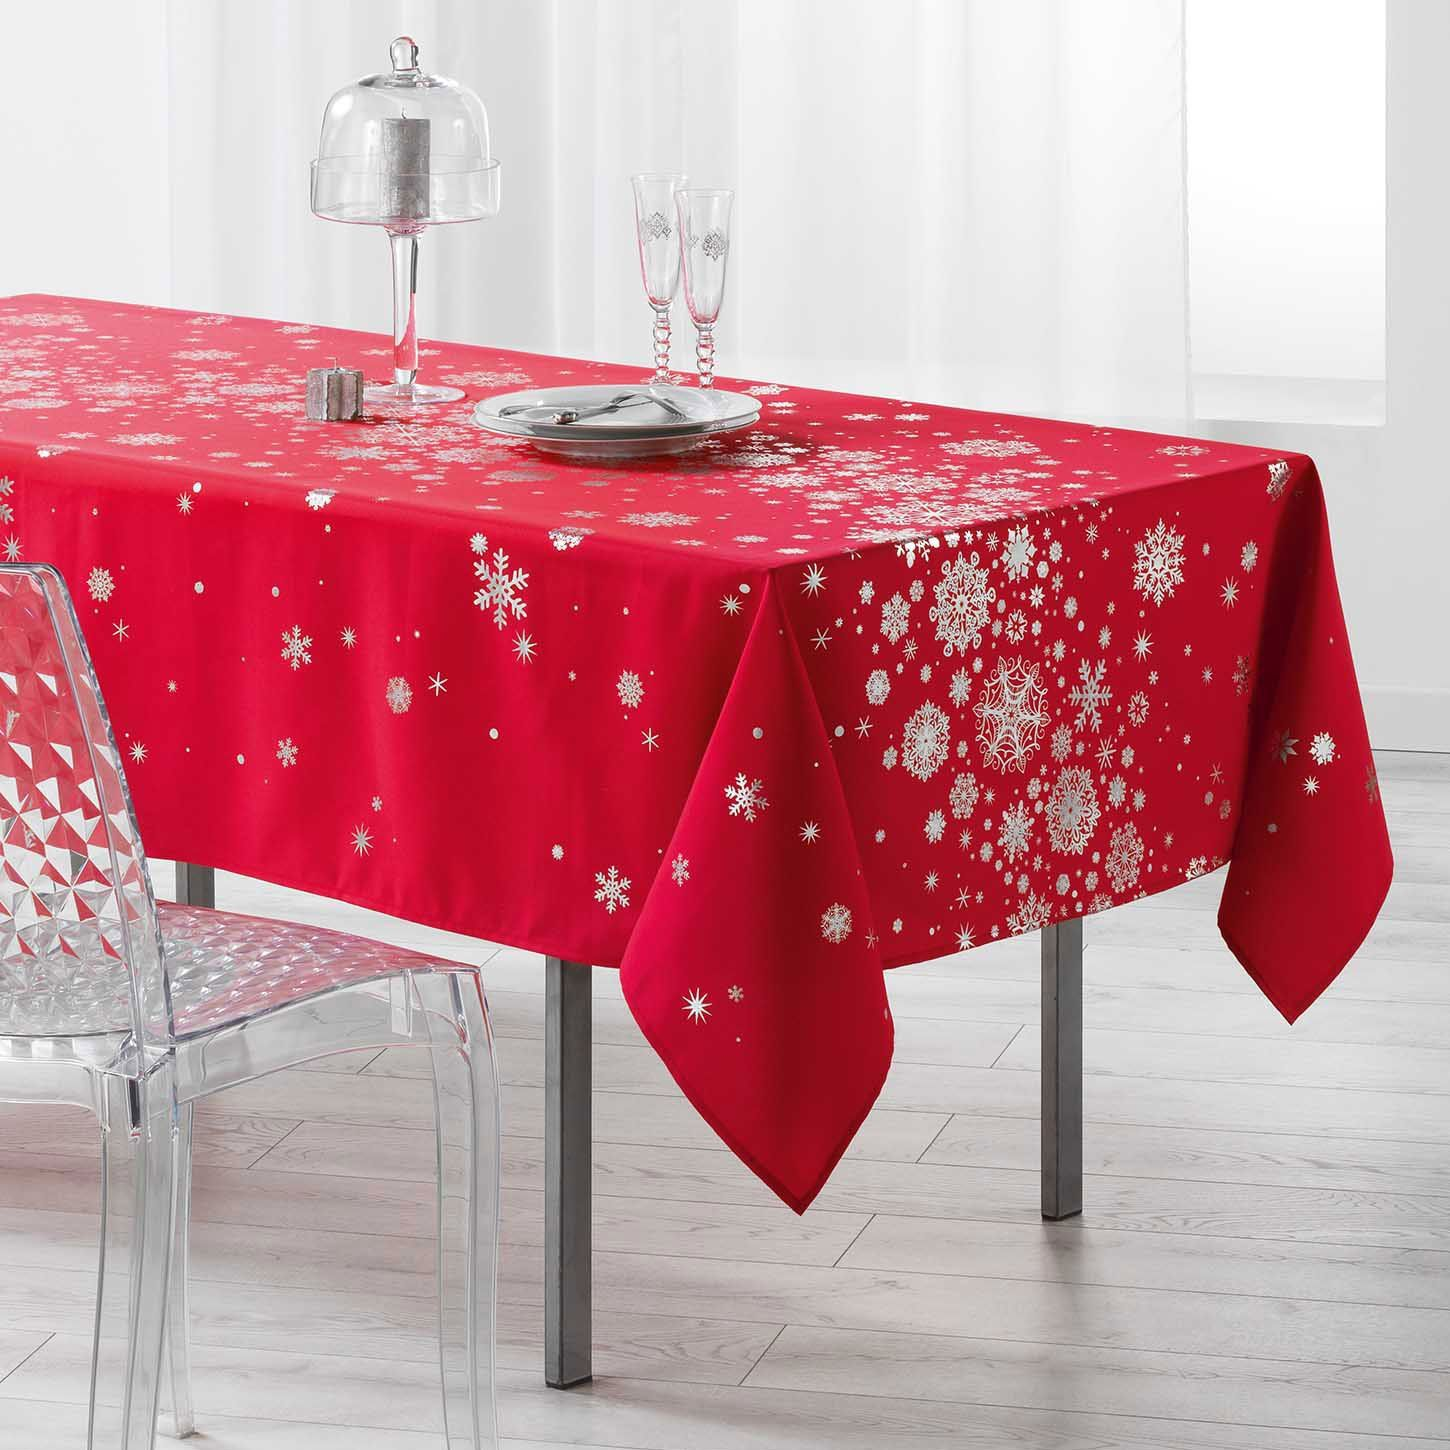 nappe rectangulaire 240 cm constellation rouge linge de table eminza. Black Bedroom Furniture Sets. Home Design Ideas